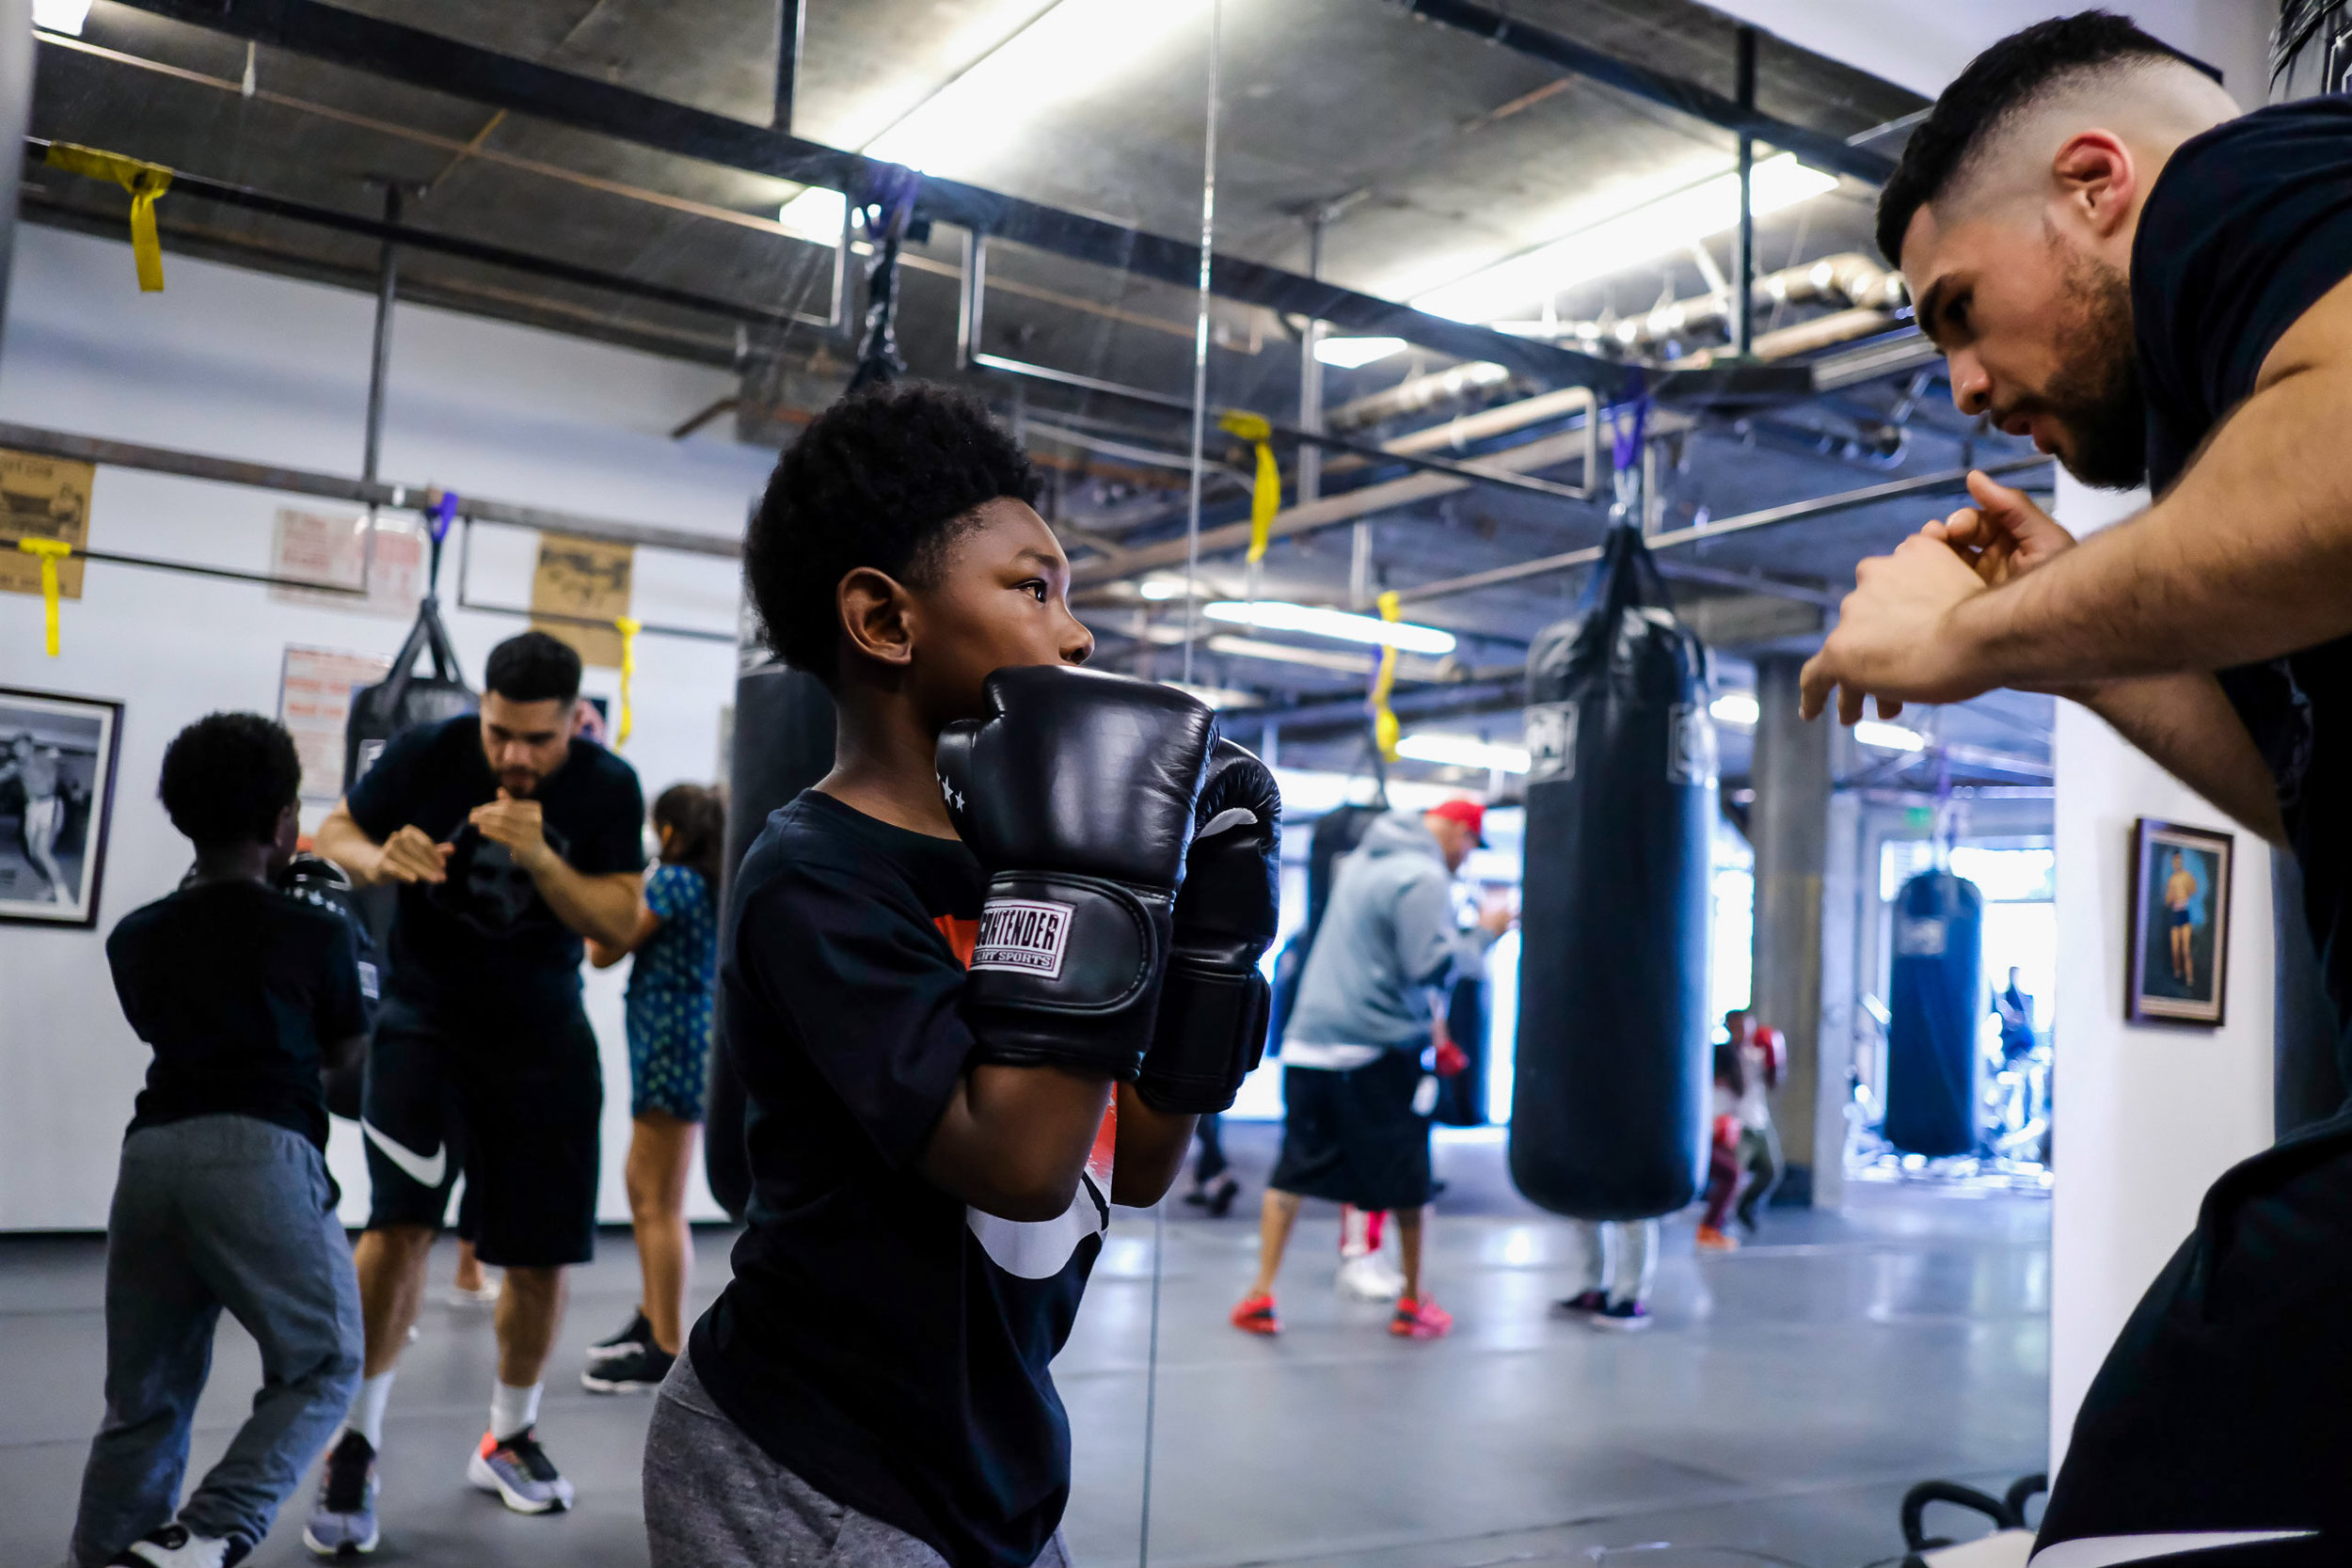 3rd street boxing kids classes